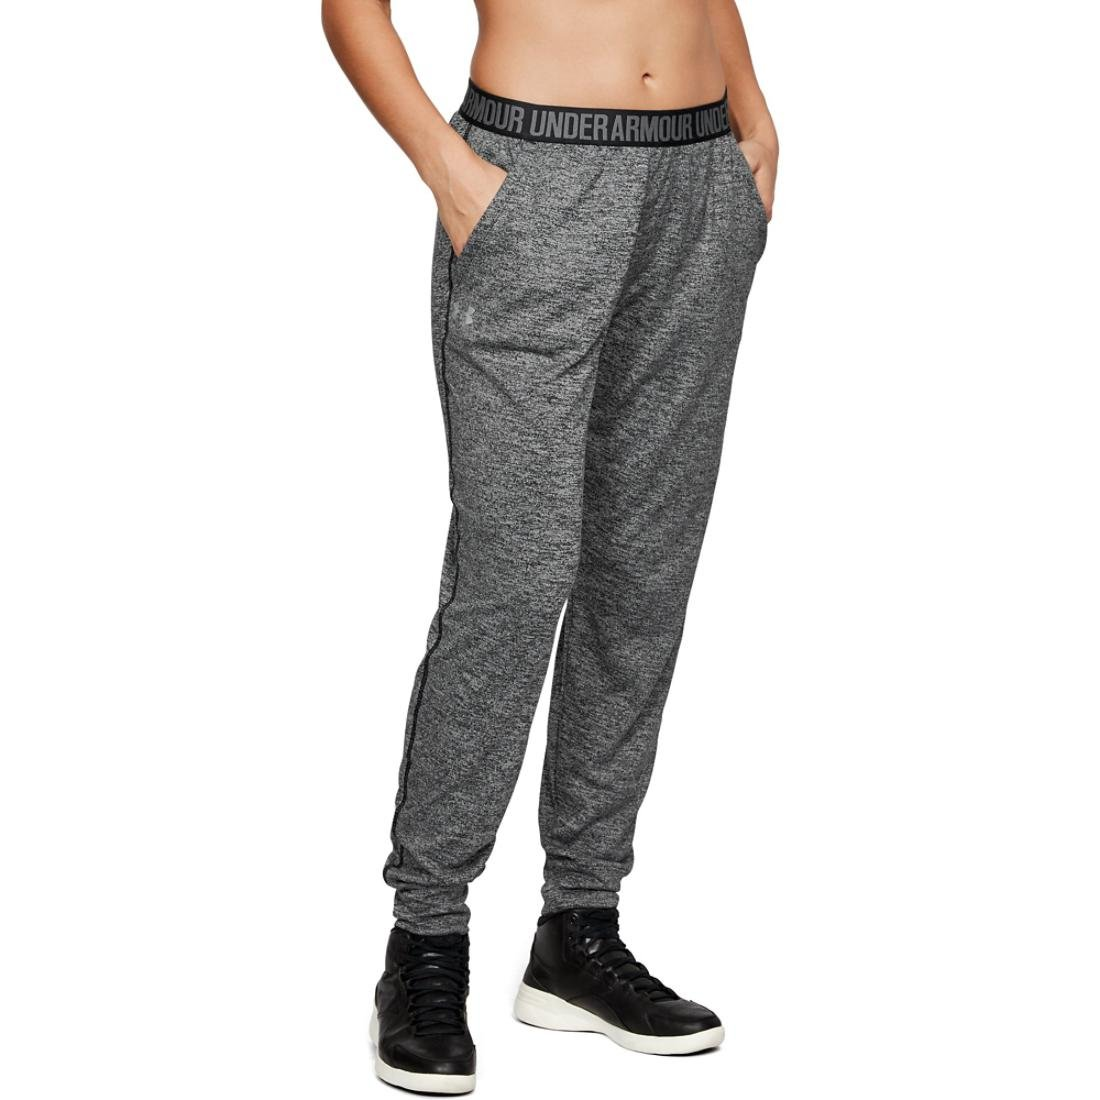 Under Armour Women's Play up Twist Pant Under Armour Apparel 1311331